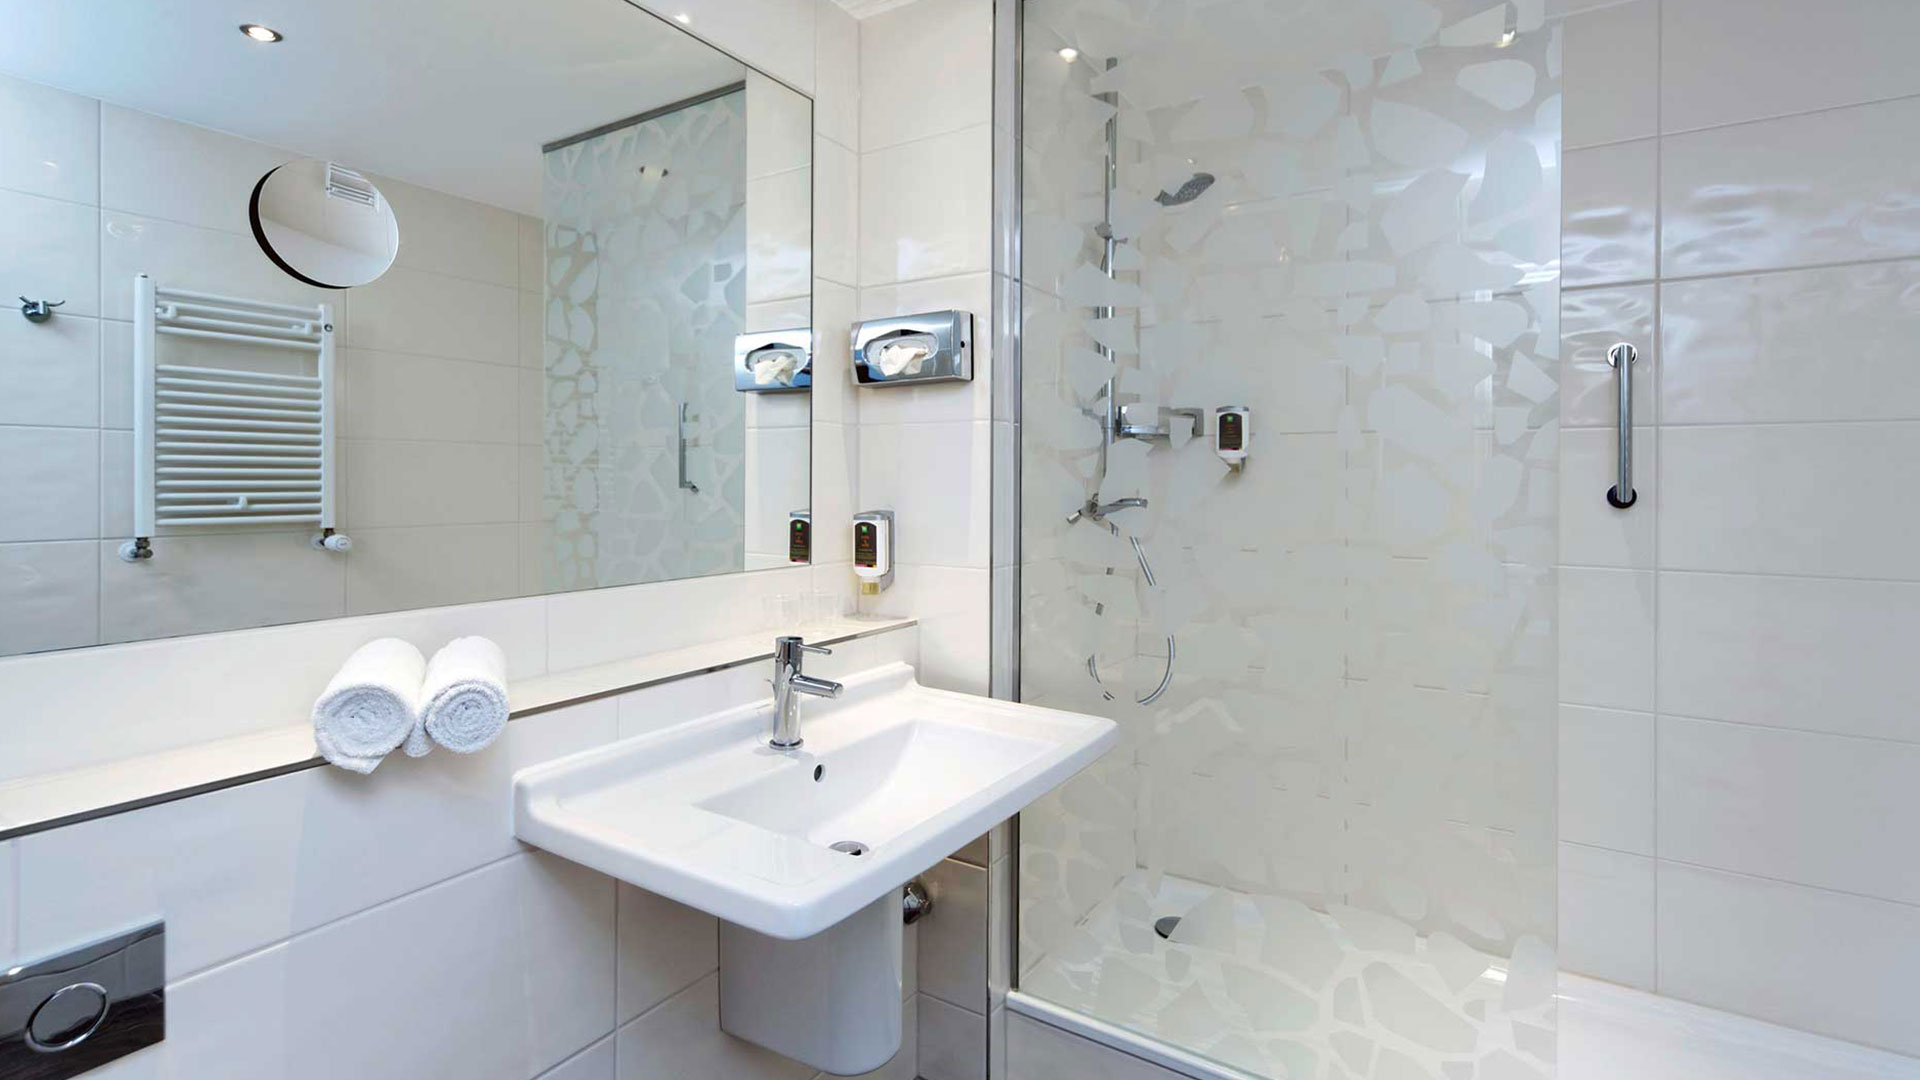 Photo of a bathroom - ibis Styles Stuttgart